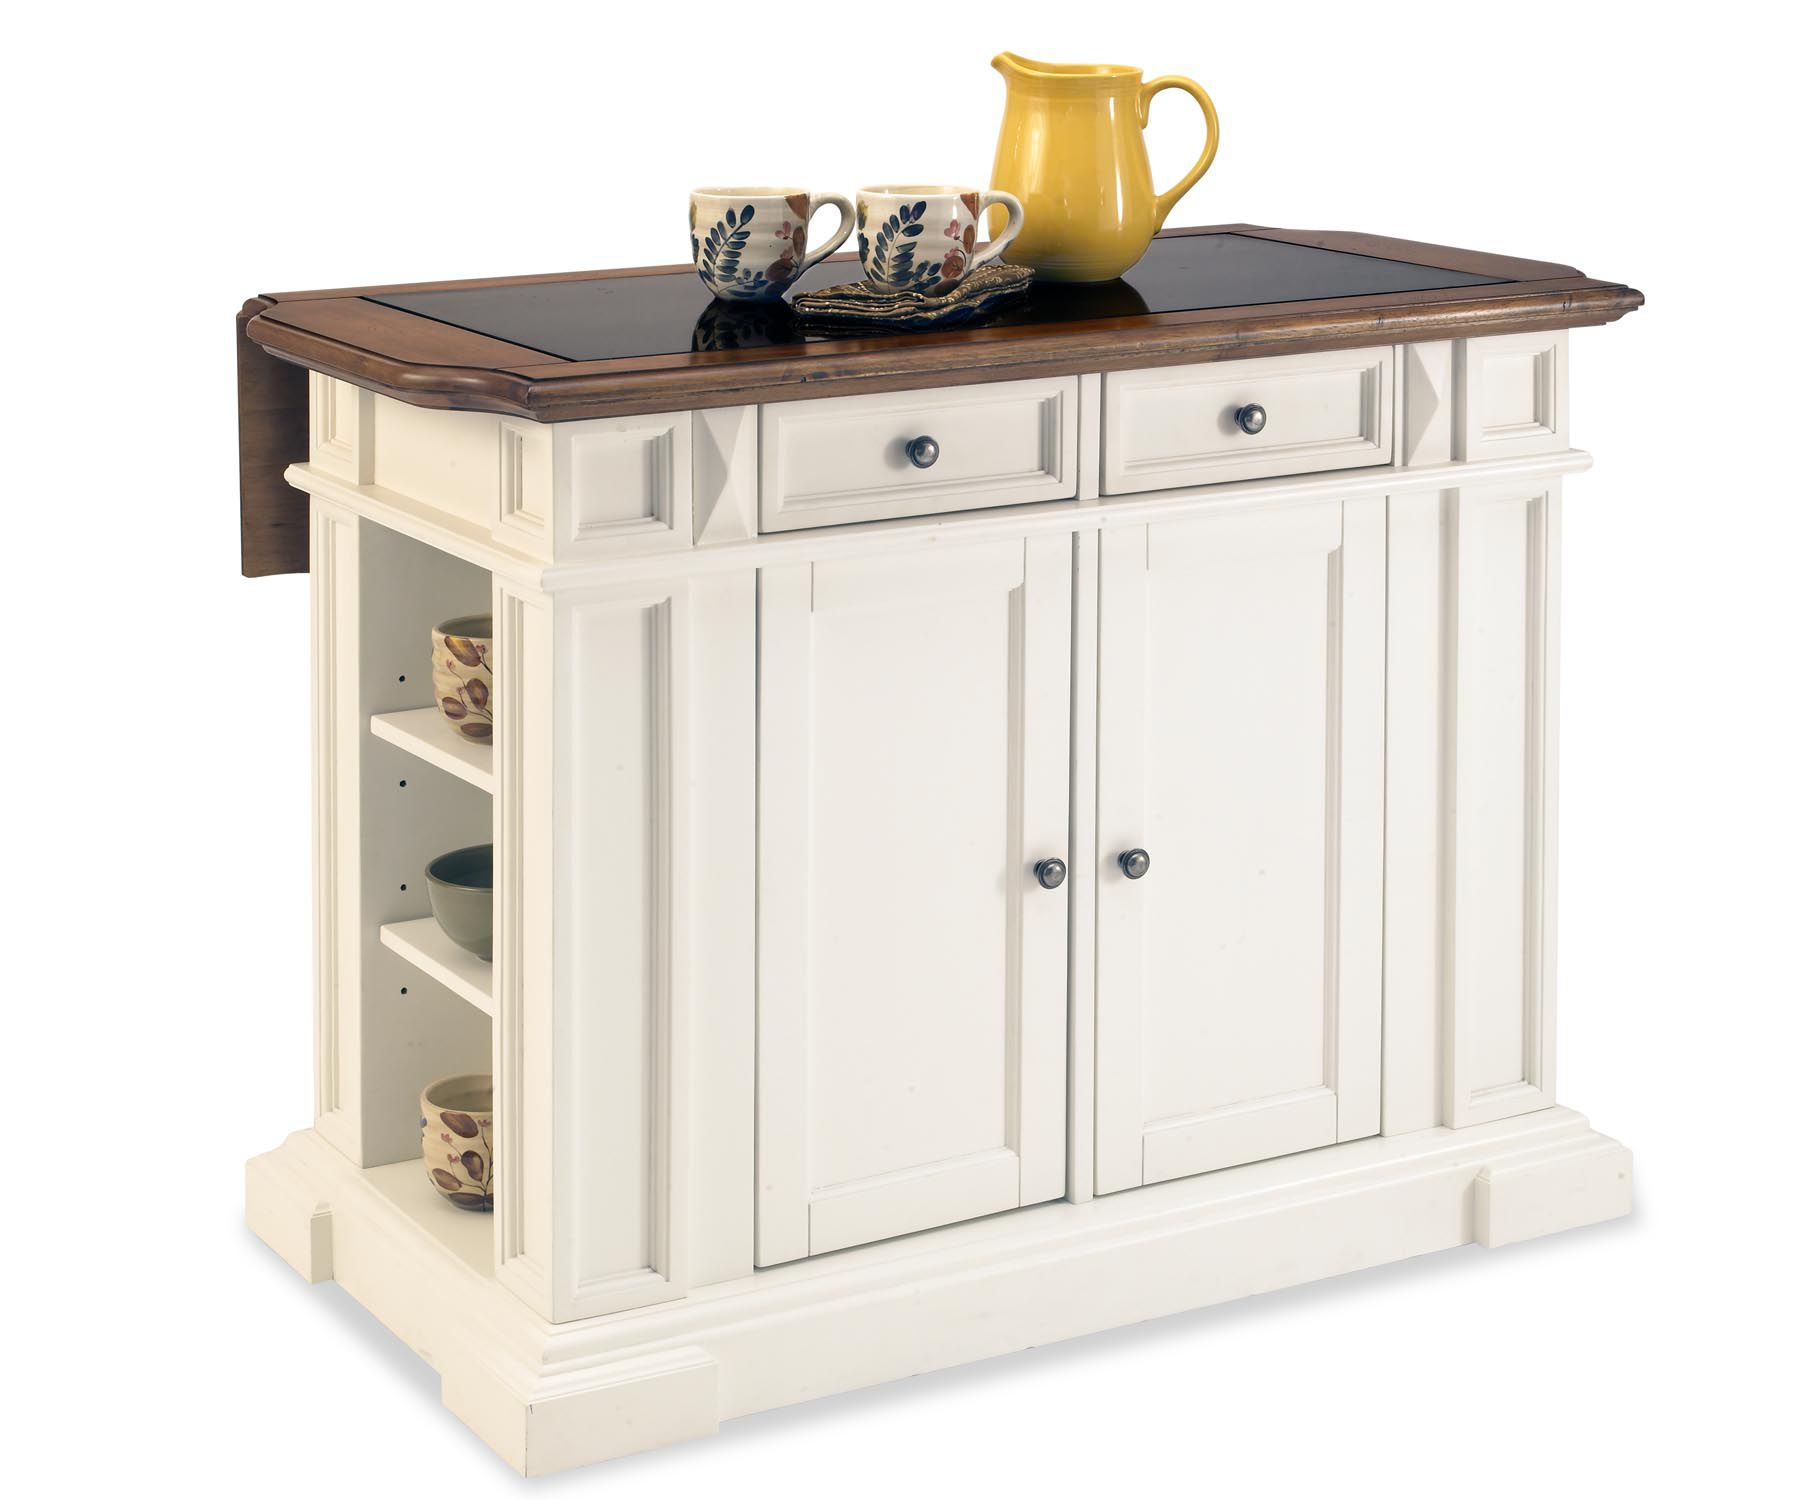 Nantucket Distressed White Finish Kitchen Island By Home Styles Home Styles Nantucket Kitchen Island - Home - Furniture